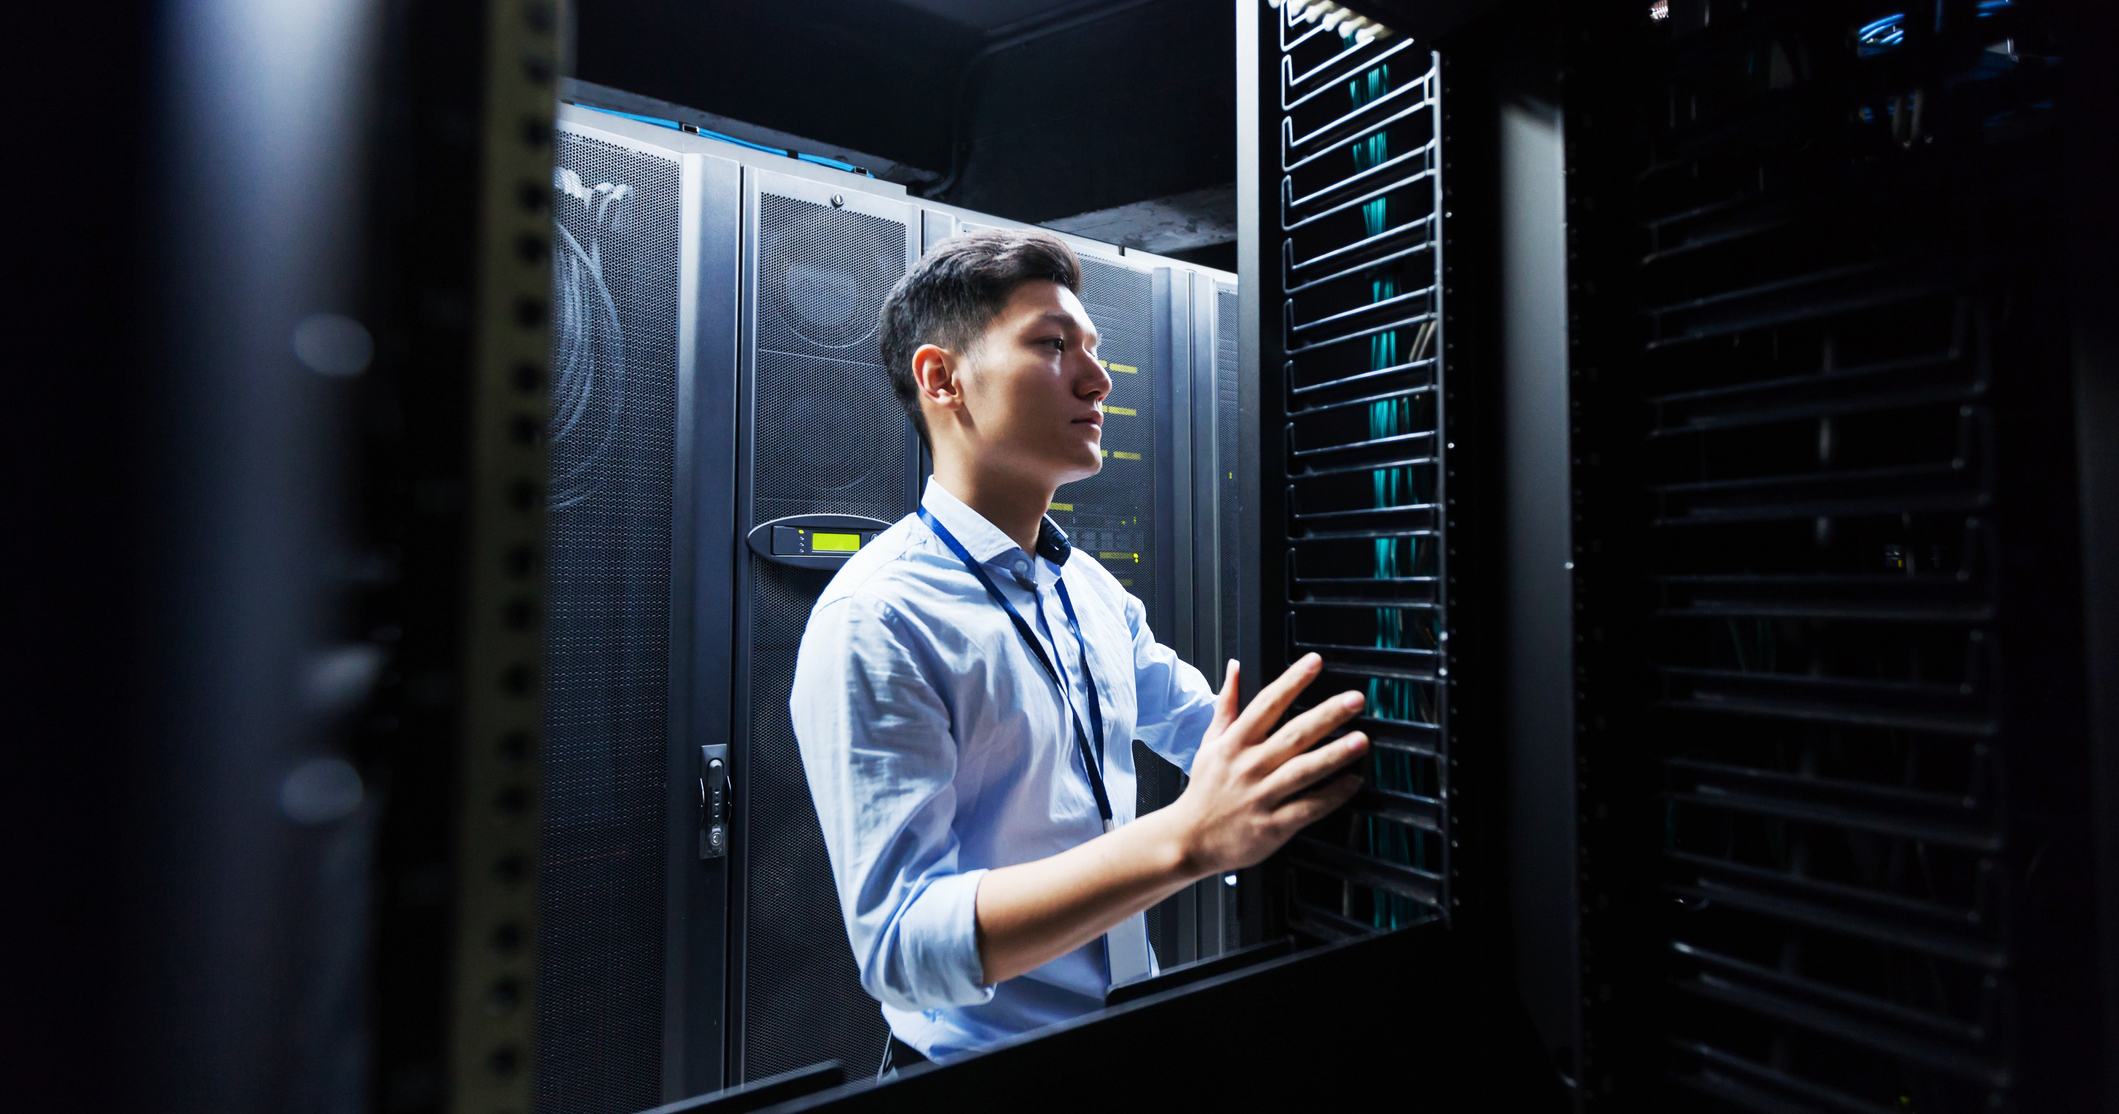 IT engineer working in a server room: data risk